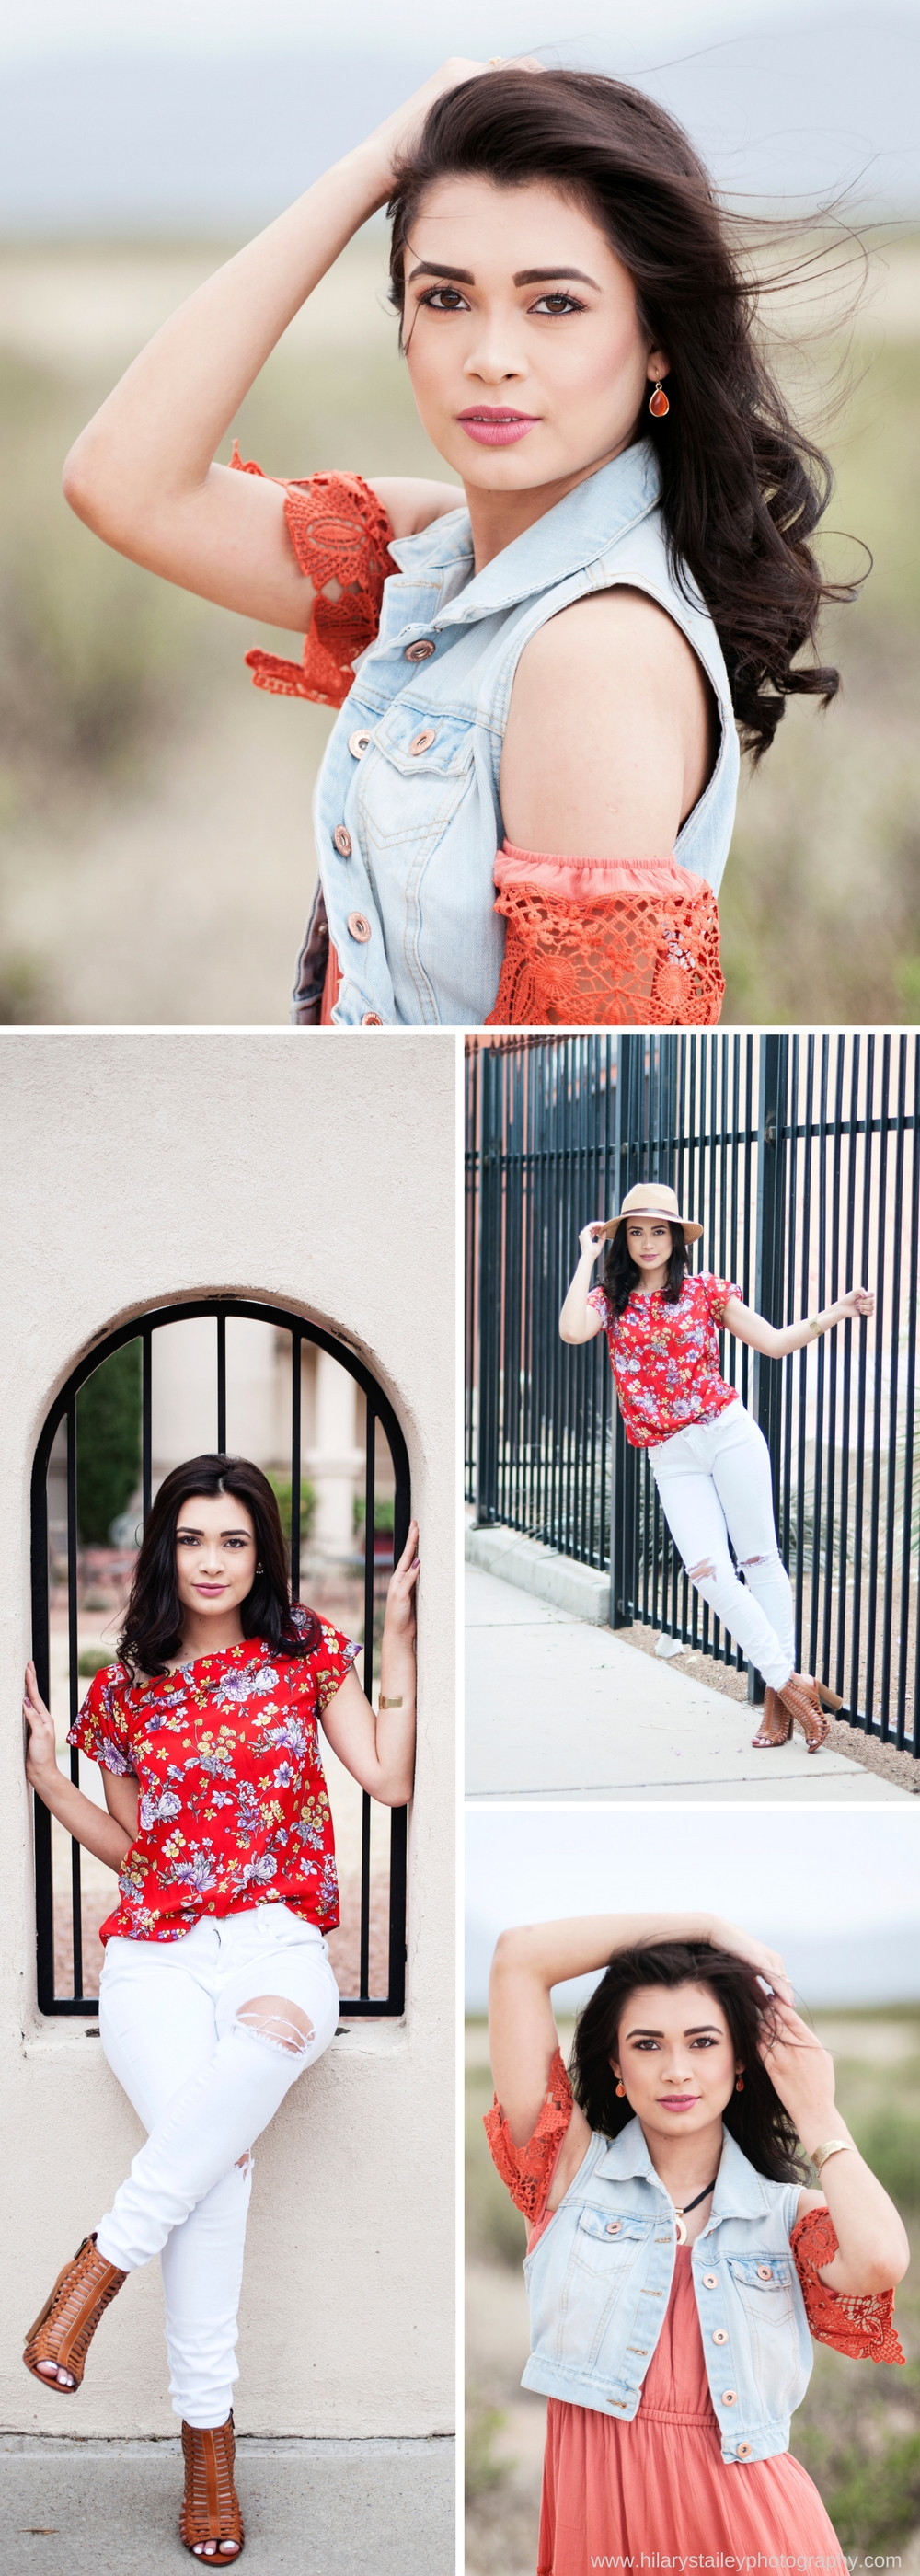 High School Senior Photography with Hilary Stailey